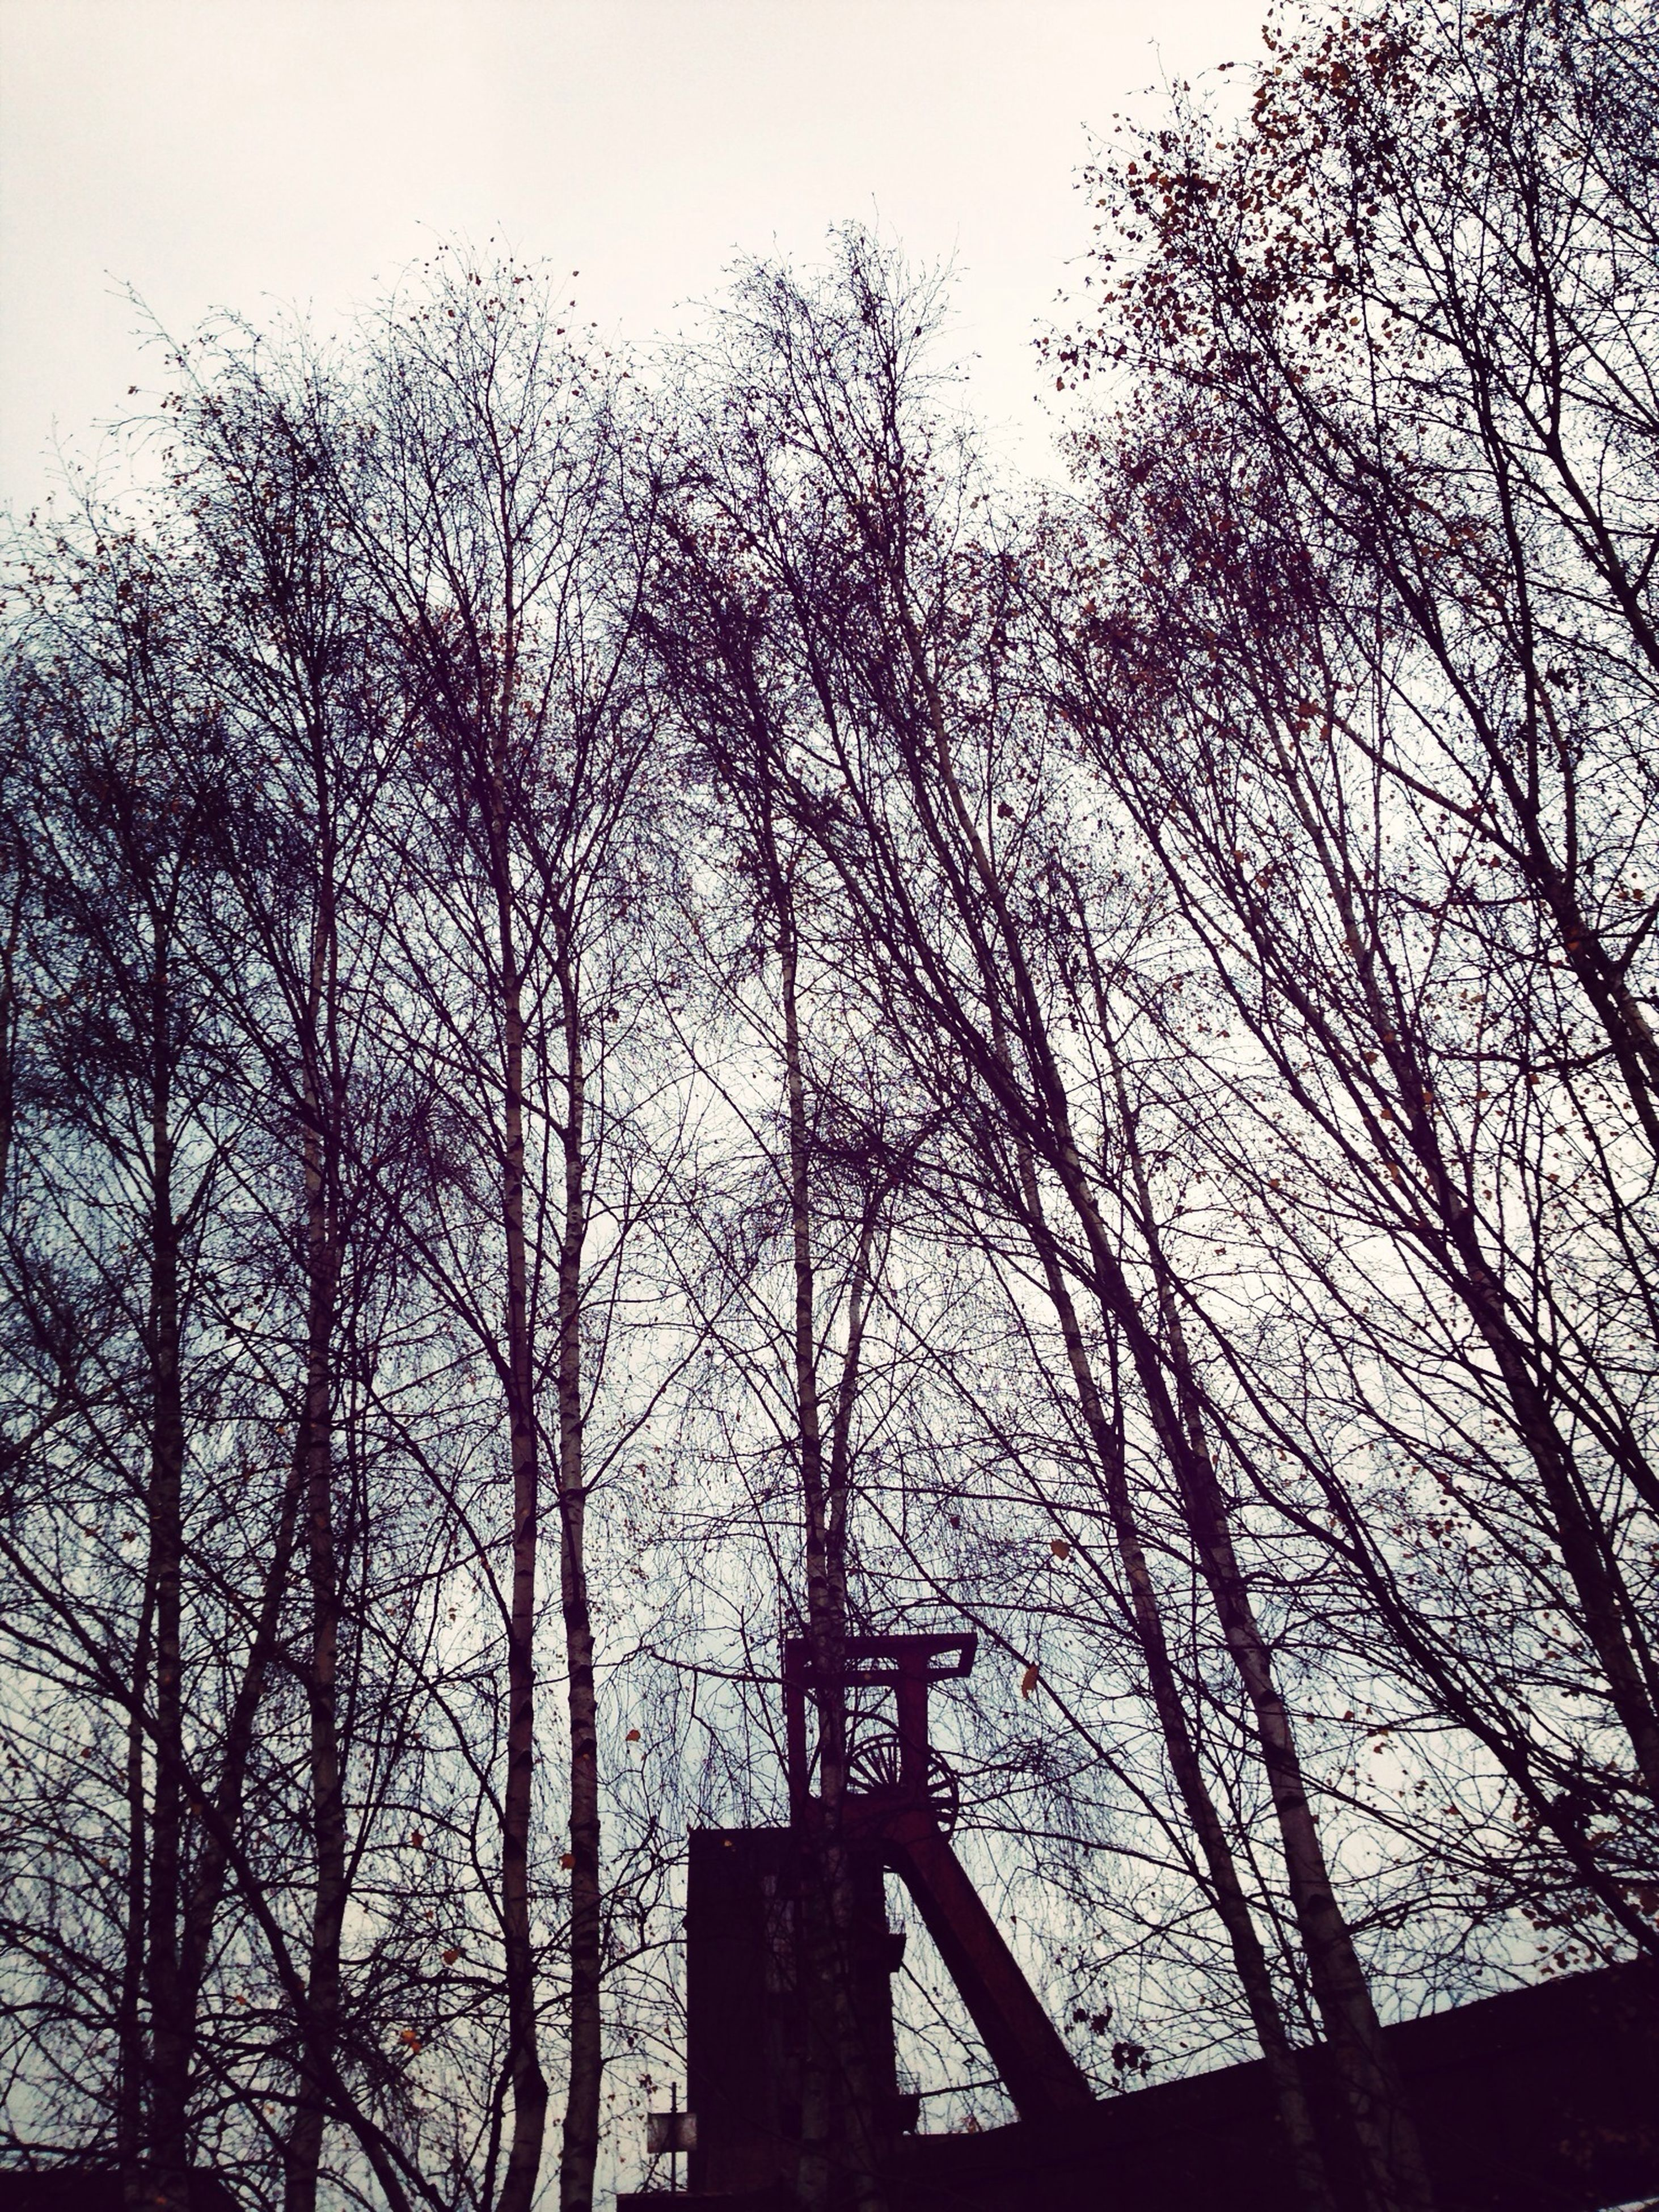 tree, silhouette, bare tree, low angle view, branch, built structure, sky, architecture, nature, tranquility, building exterior, outdoors, railing, tall - high, growth, clear sky, tree trunk, day, no people, dusk